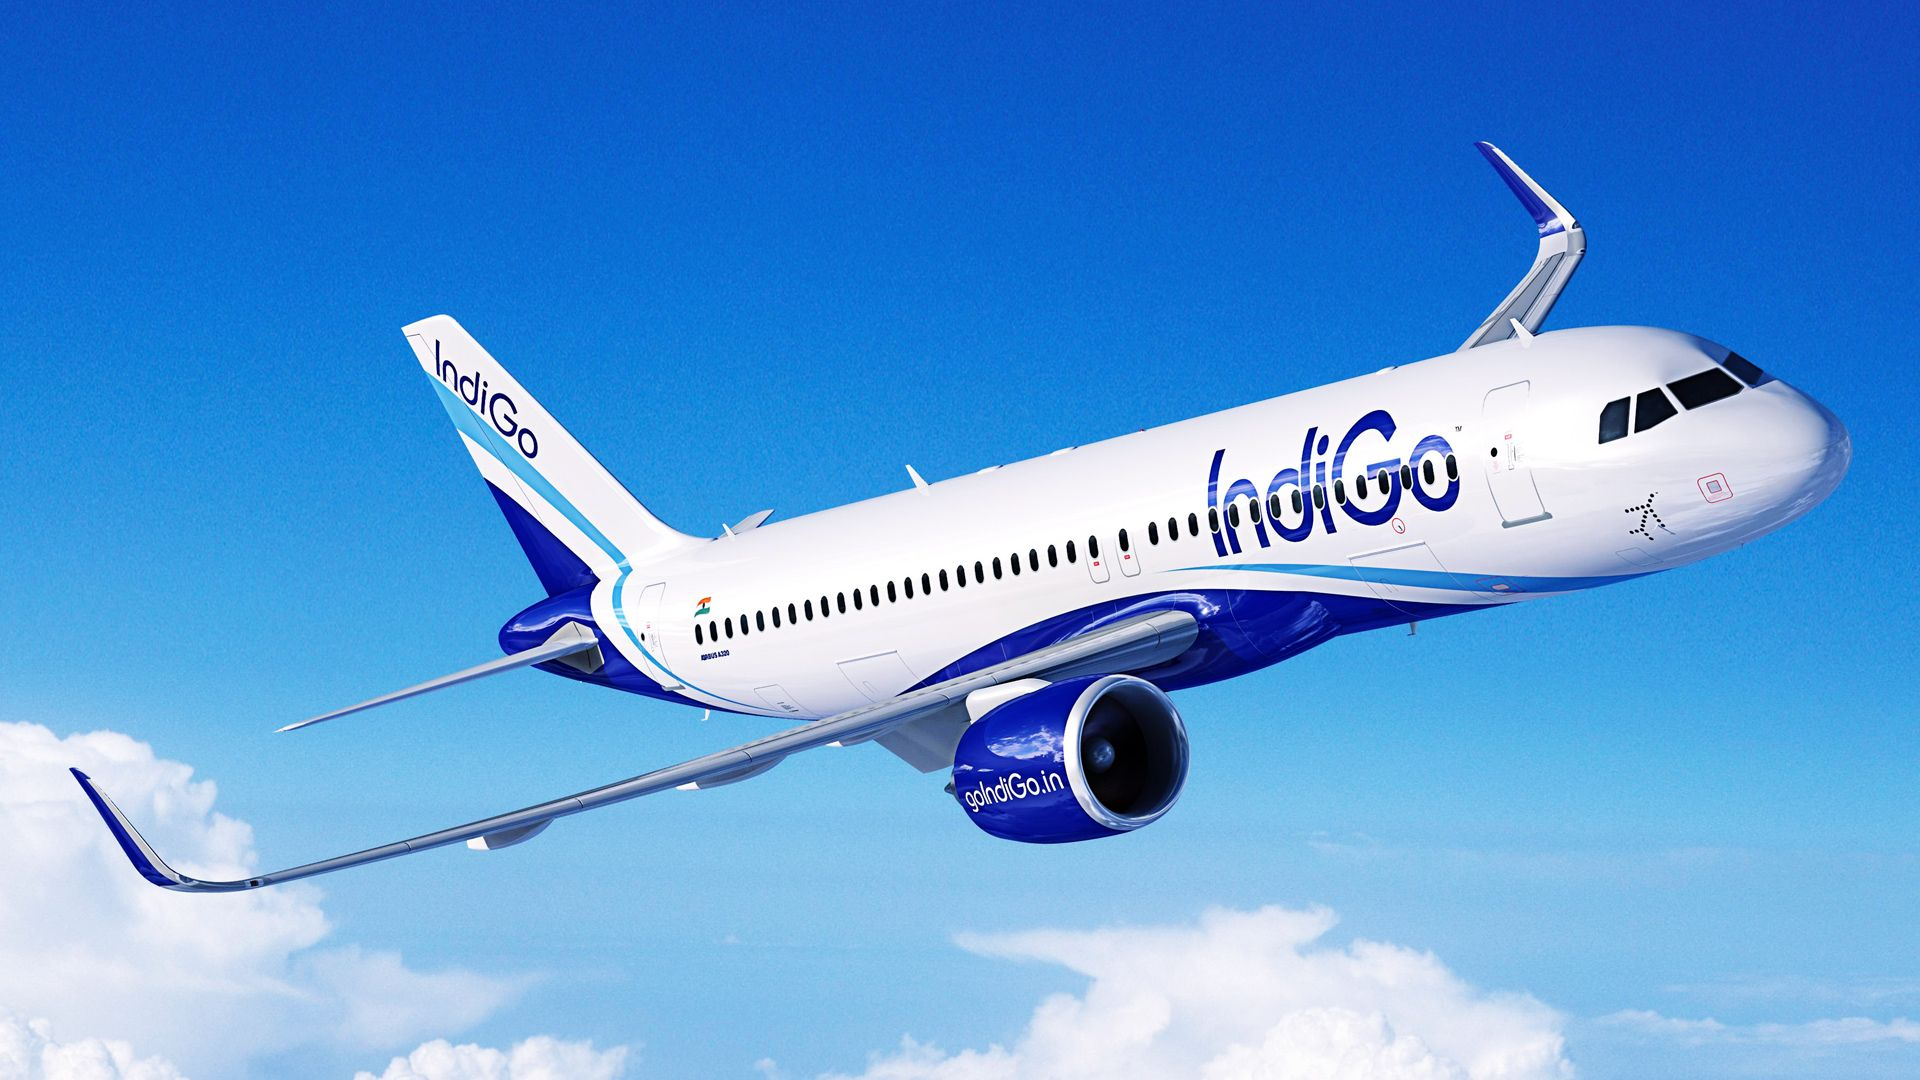 Among the leading private airlines, IndiGo Airlines take